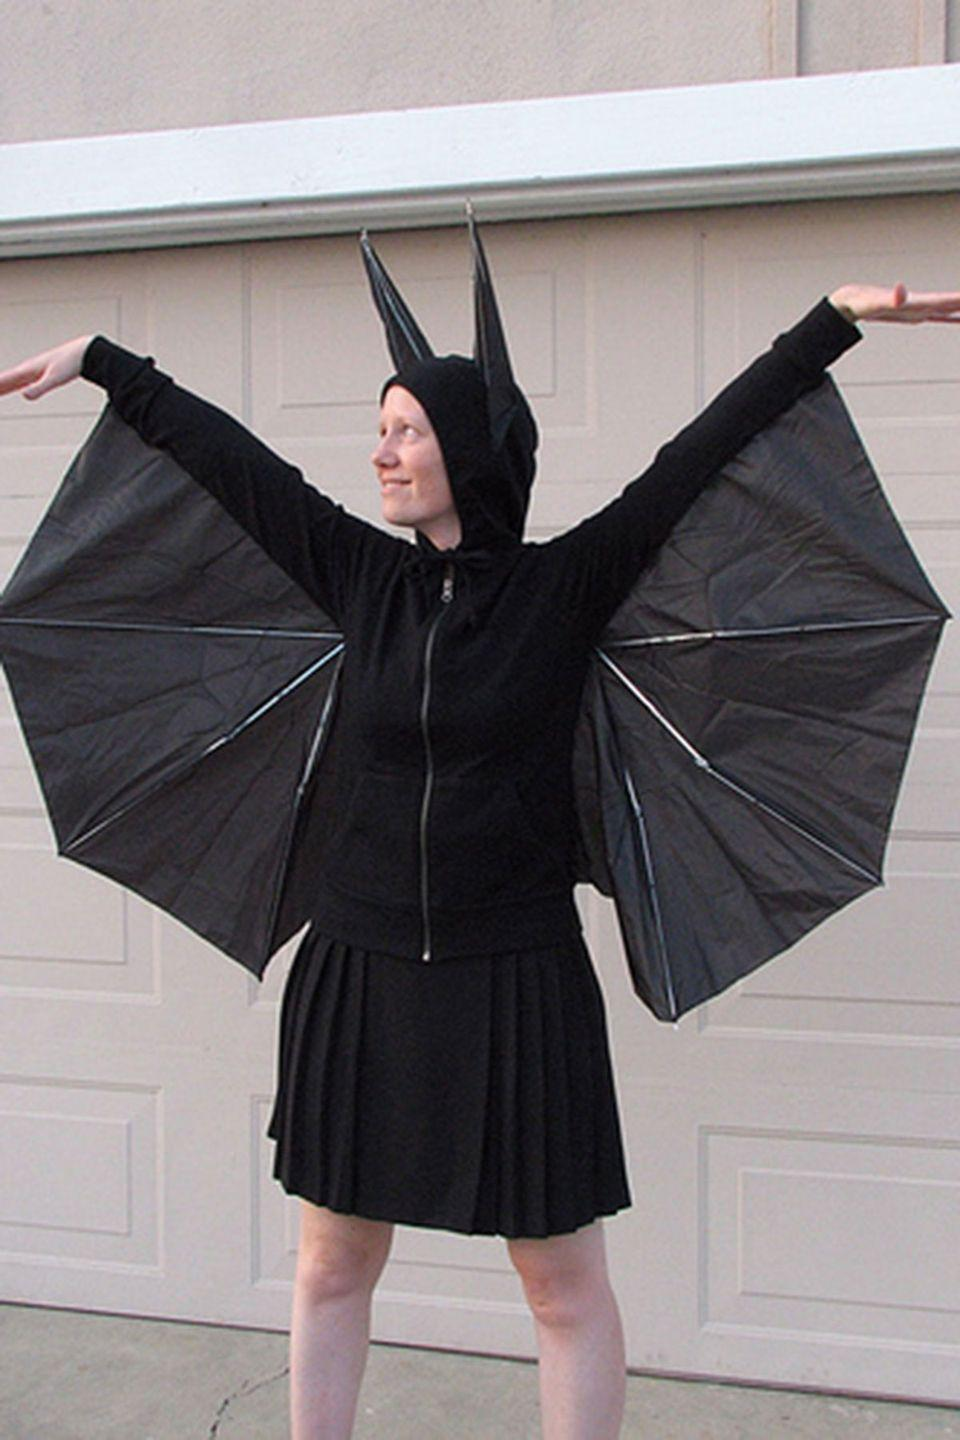 """<p>Find a new use for that broken umbrella. </p><p><strong>Get the tutorial at <a href=""""http://www.evilmadscientist.com/2006/how-to-build-a-better-bat-costume/"""" rel=""""nofollow noopener"""" target=""""_blank"""" data-ylk=""""slk:Evil Mad Scientist"""" class=""""link rapid-noclick-resp"""">Evil Mad Scientist</a>. </strong></p>"""